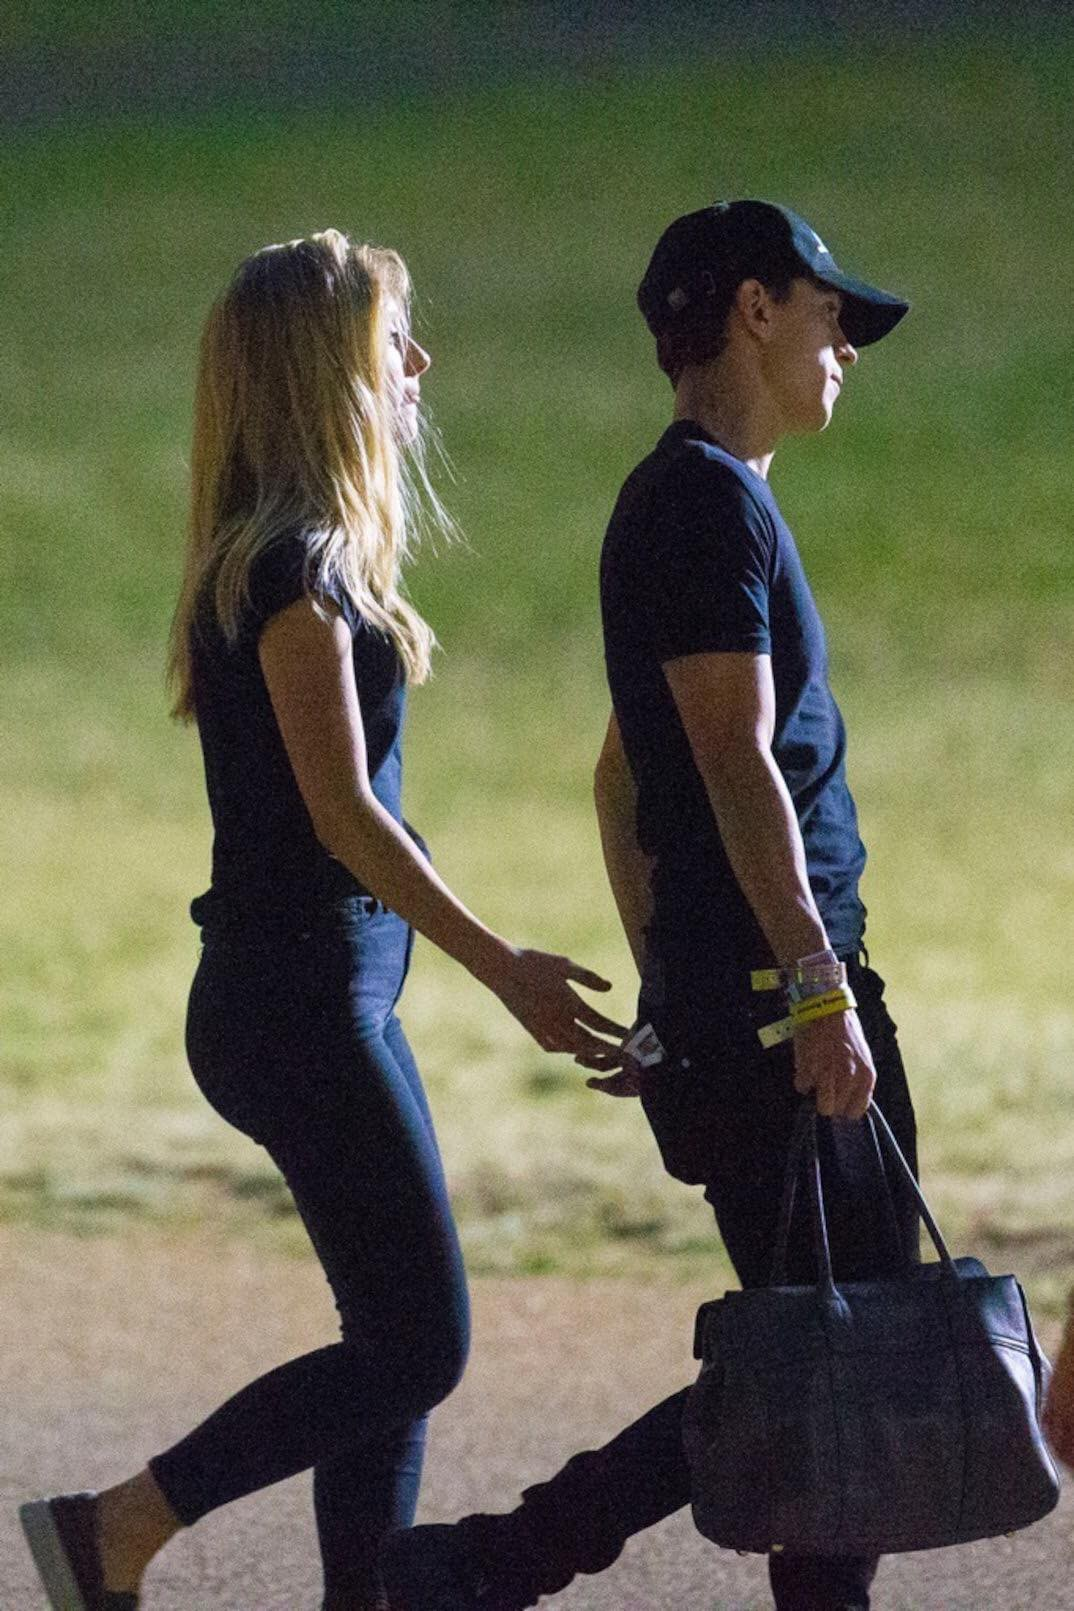 Spider-Man Tom Holland was caught in close contact with strange girls, but why are two younger older people different from their mothers? - Picture 10.